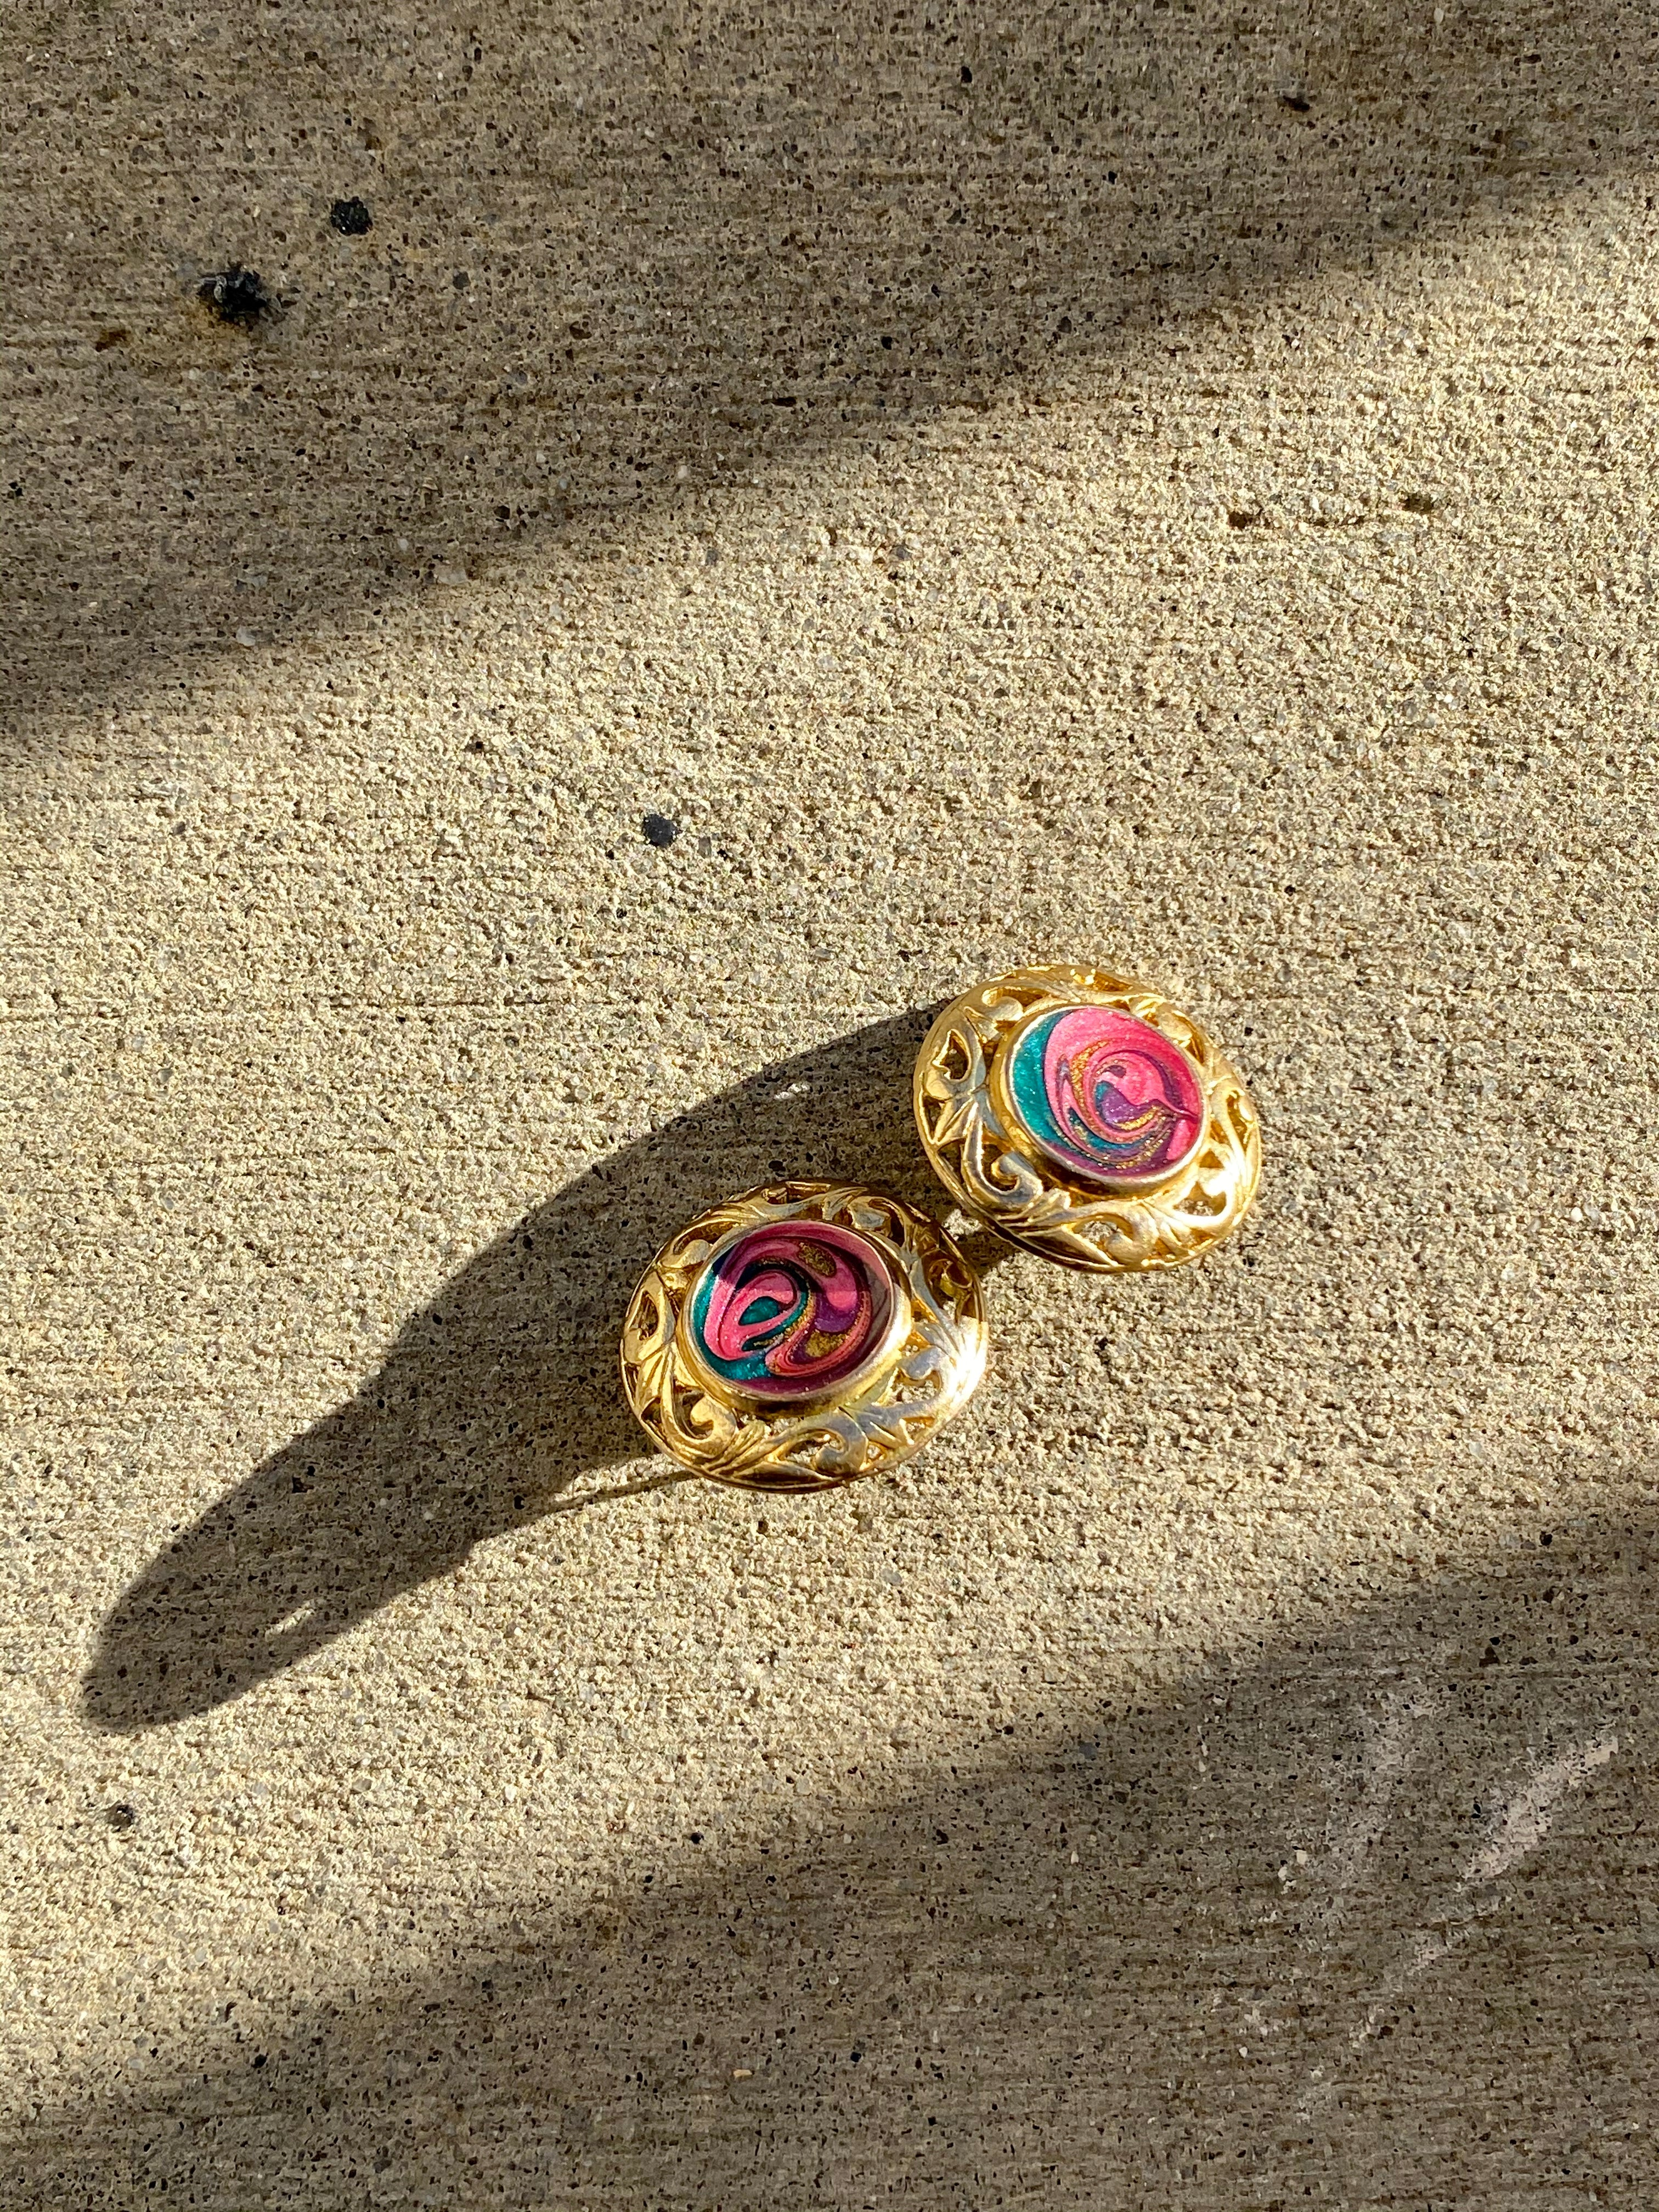 Gold Plated Earrings with carved detail & Colorful Glitter Swirl Finish